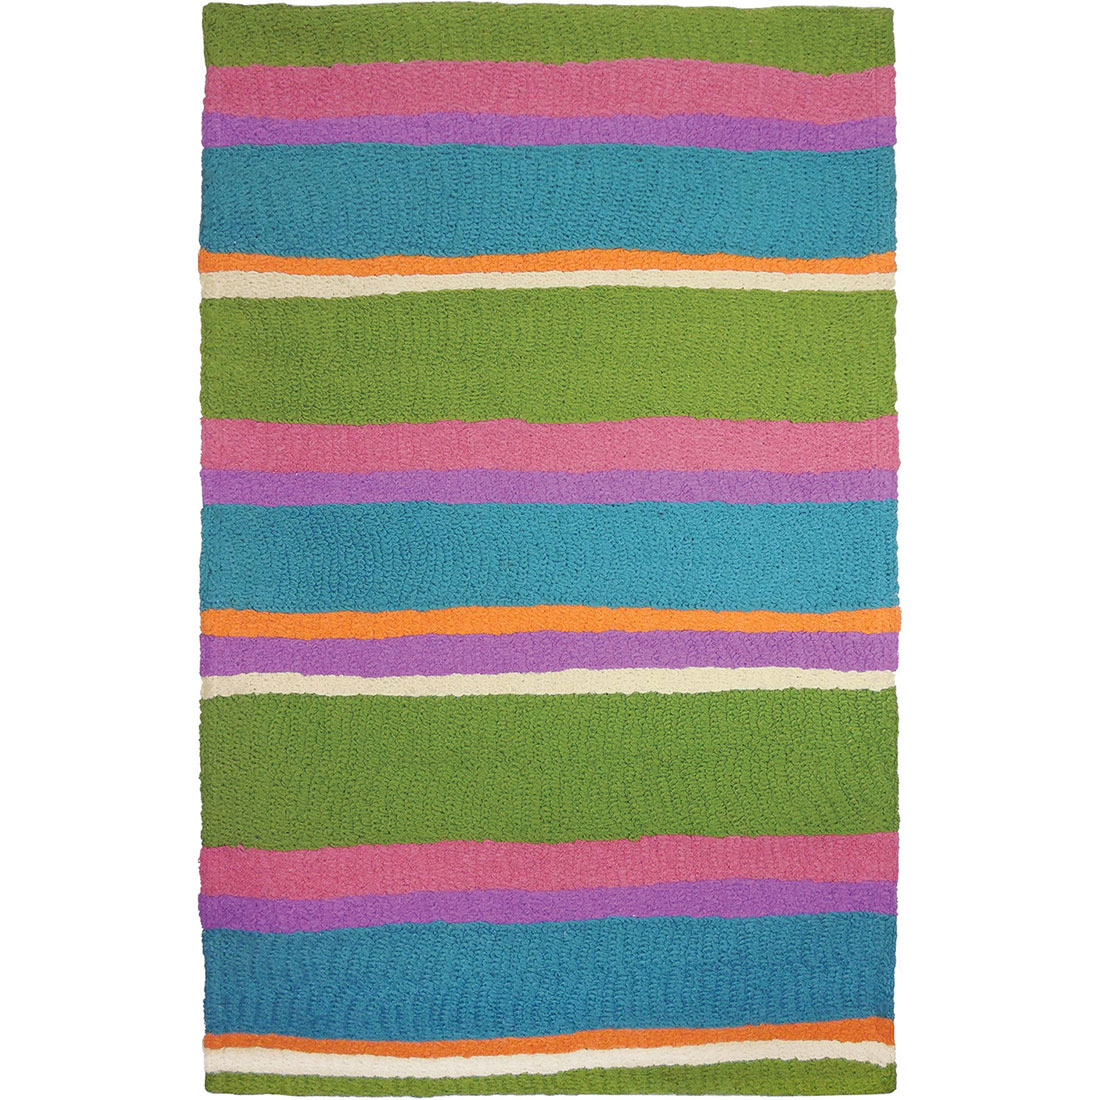 Cabana Stripe Indoor/Outdoor Rug - 5 x 7